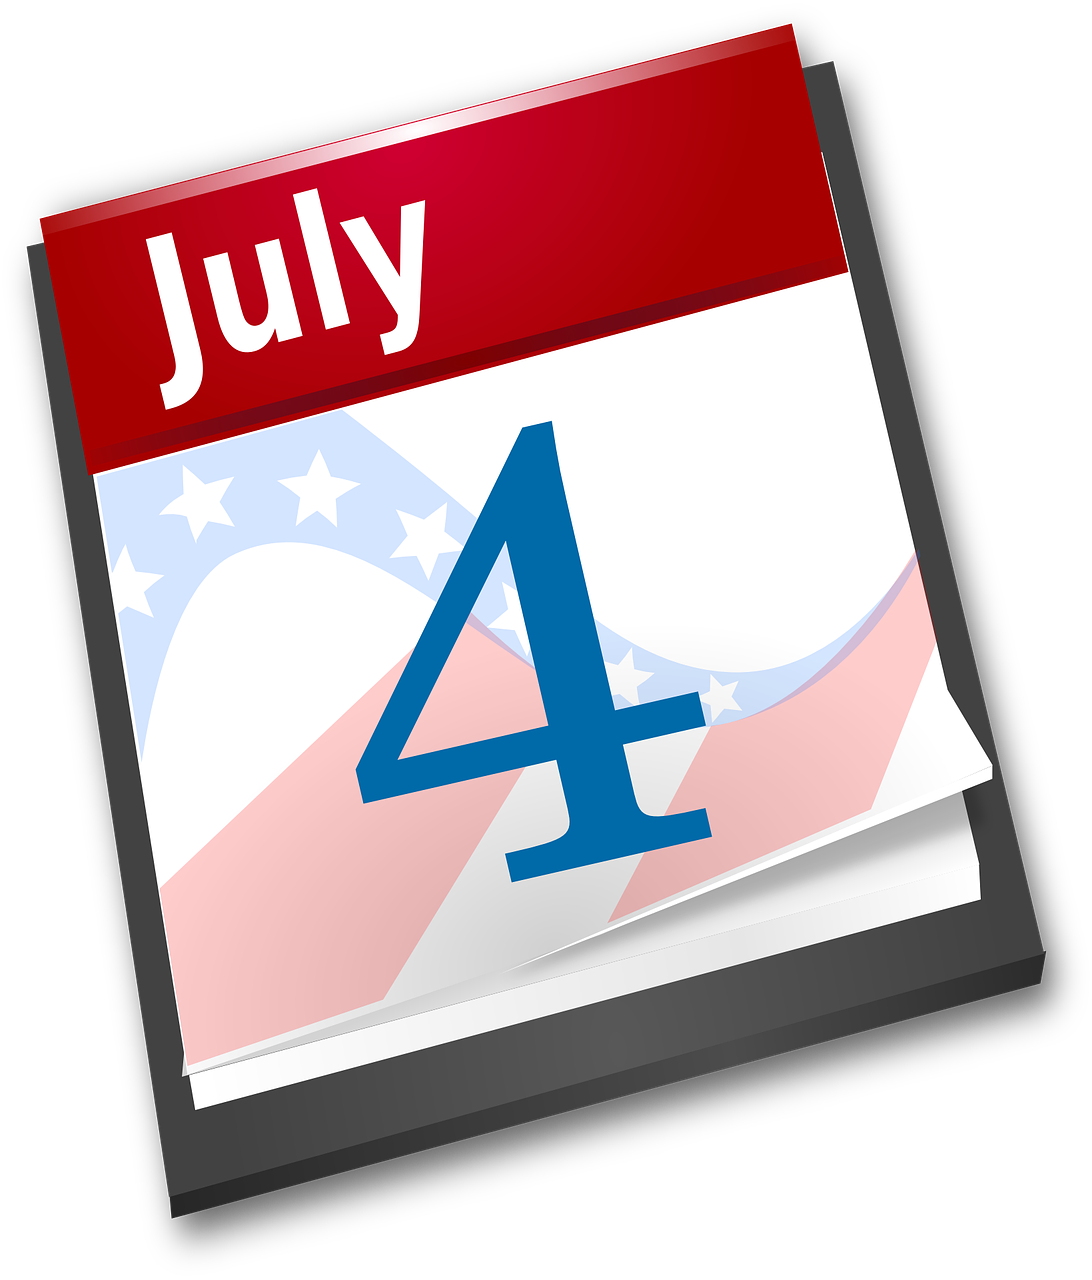 July clipart 1st day. Vacation independence usa america